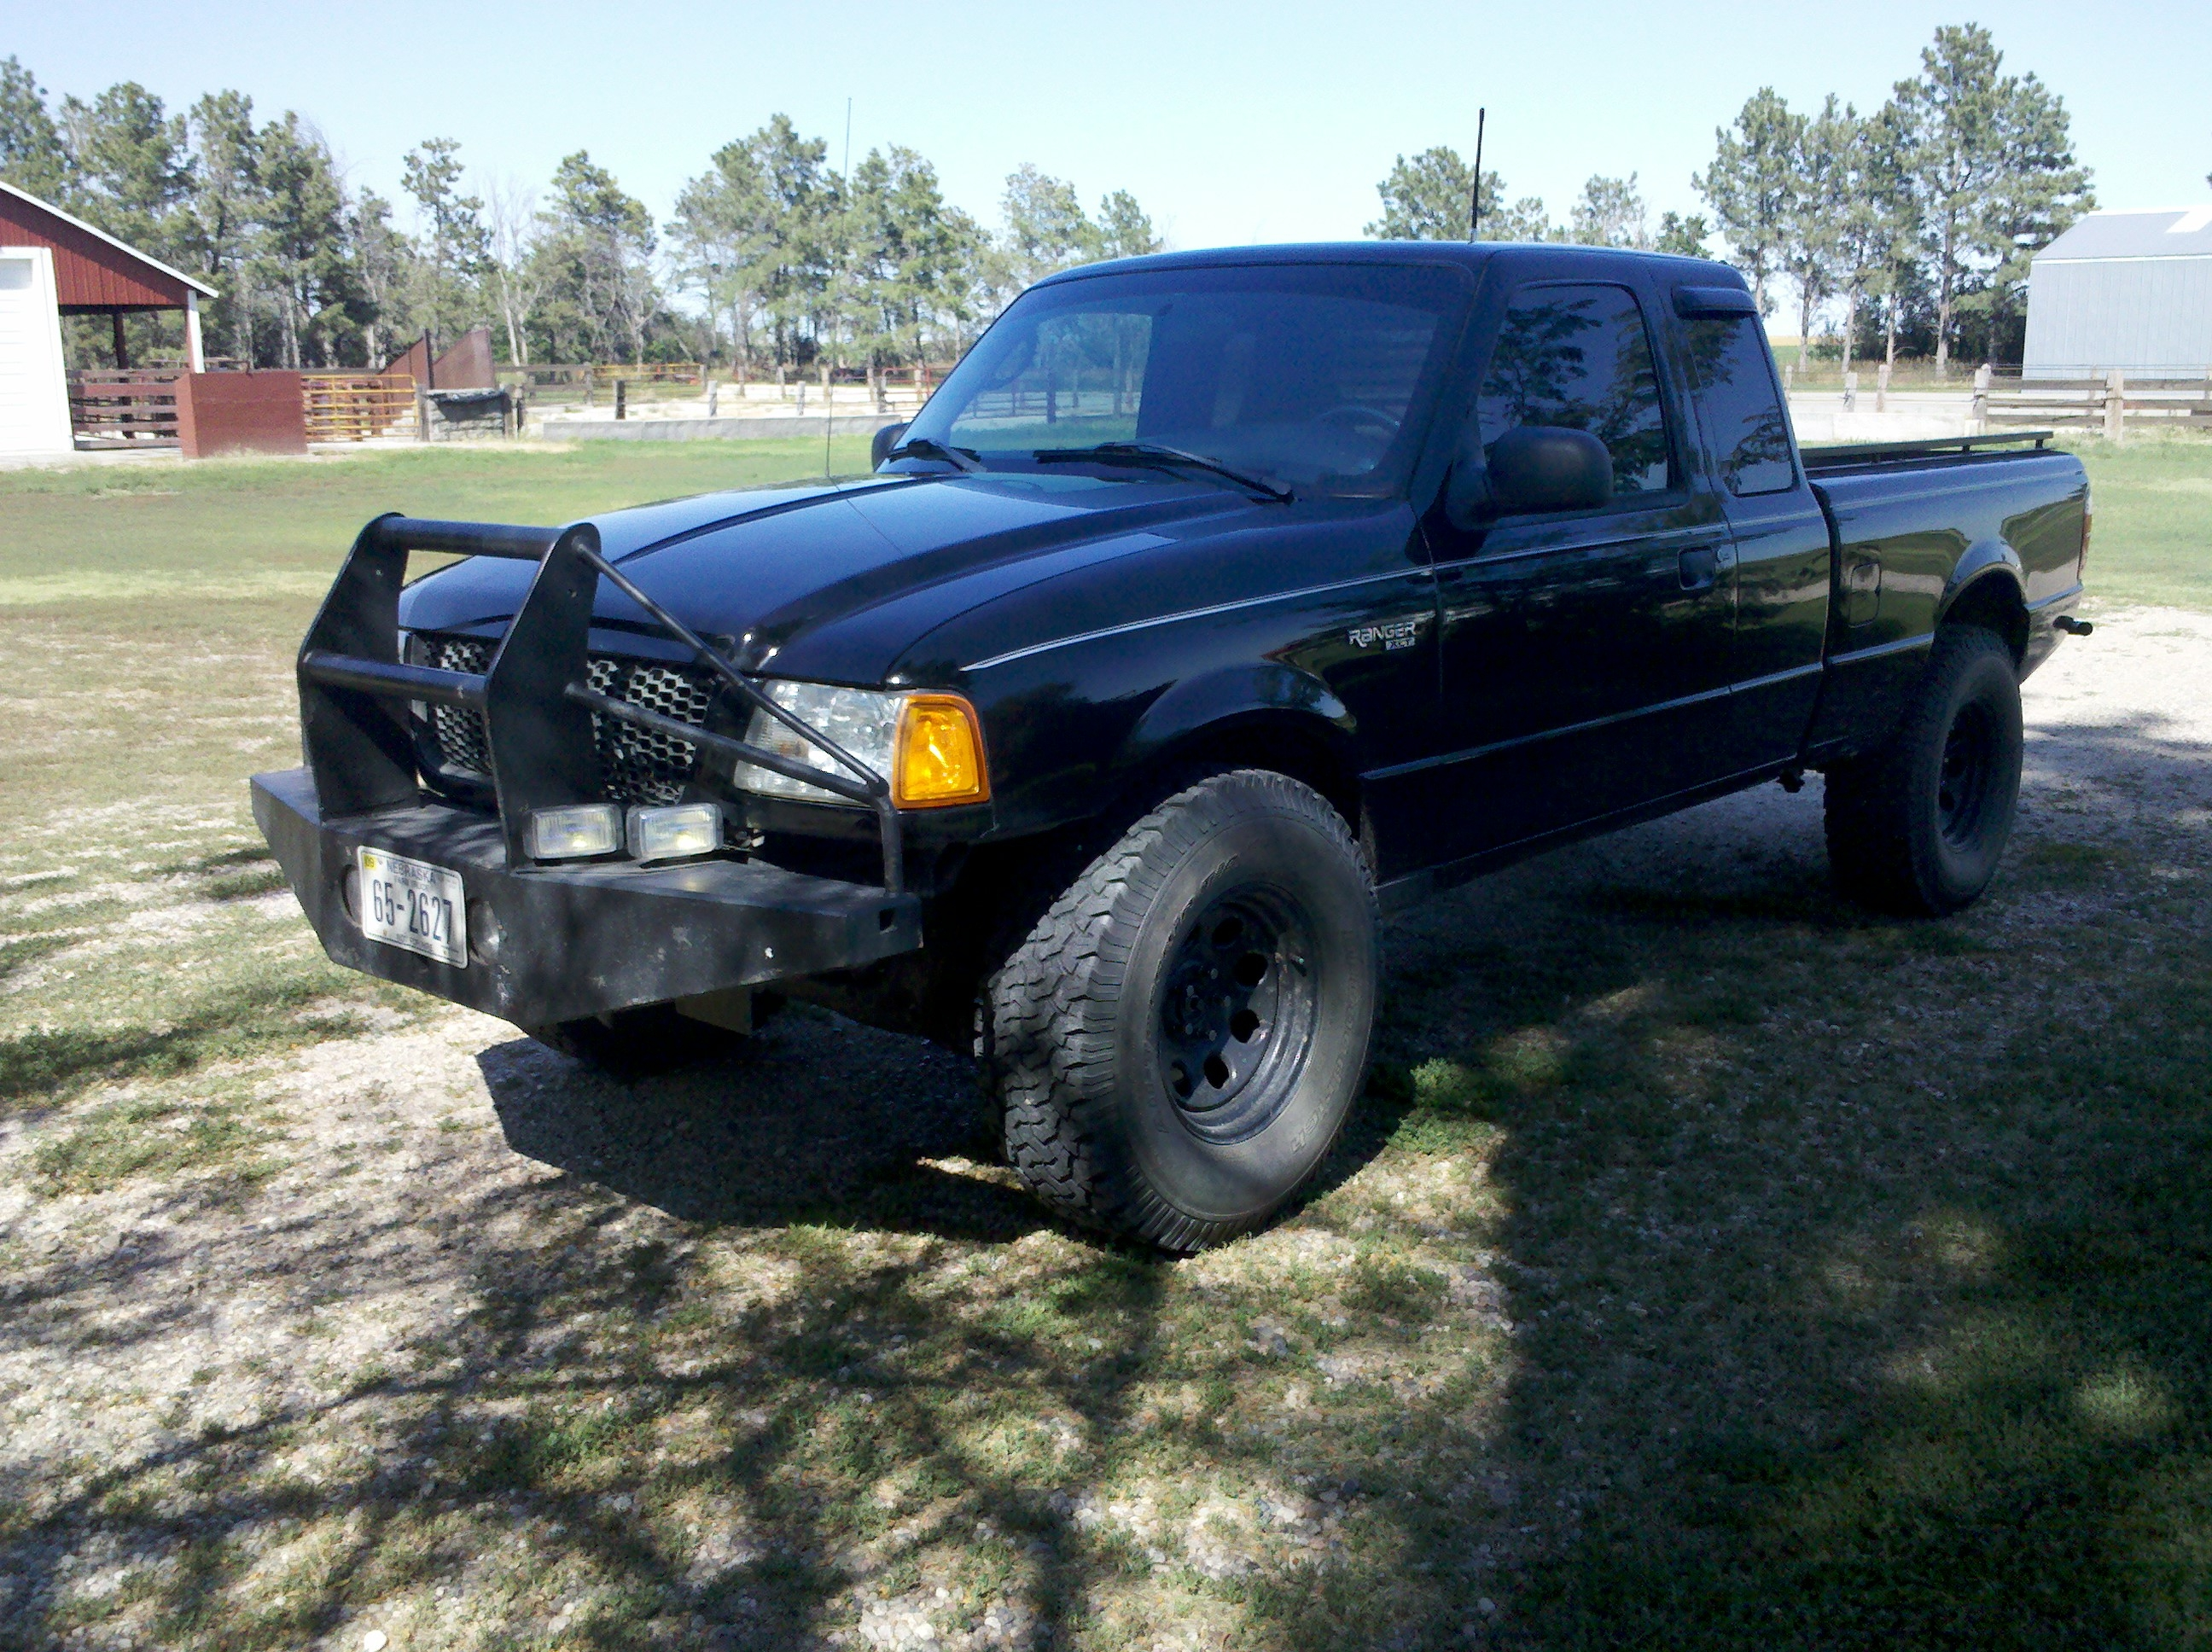 Another Kgclassiccars 2003 Ford Ranger Super Cab post... - 15230065